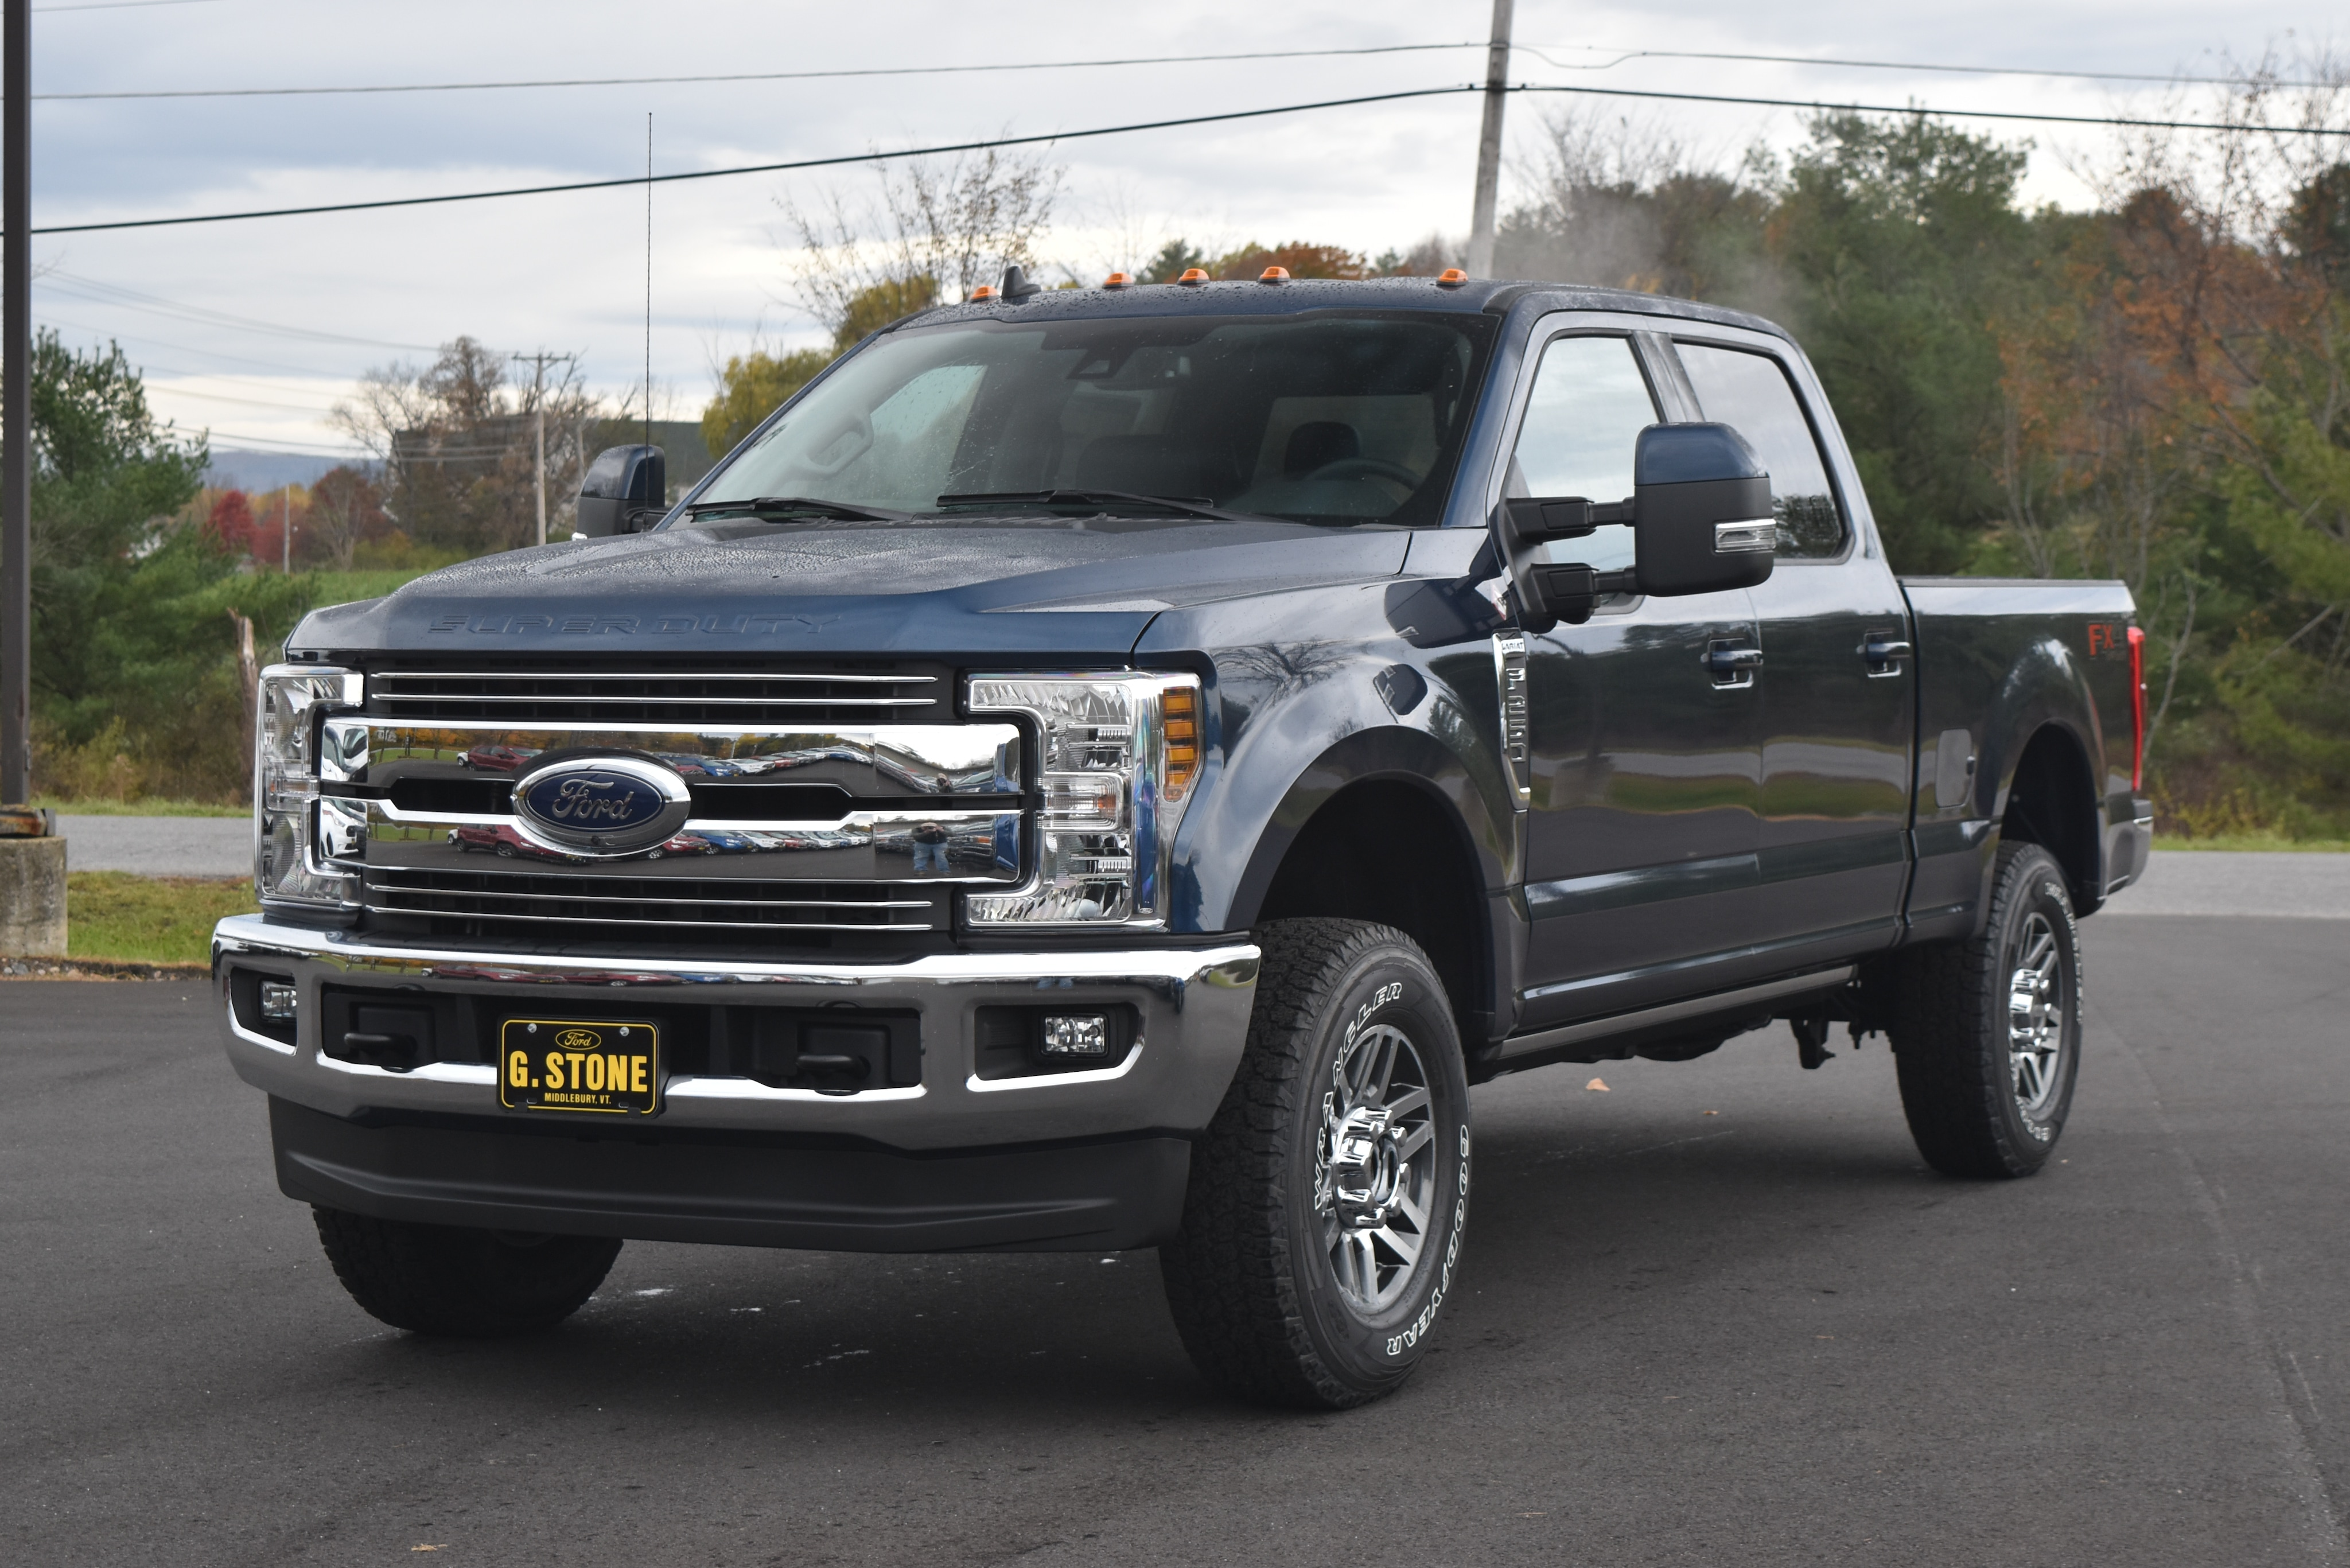 RPMWired.com car search / 2019 Ford F-250